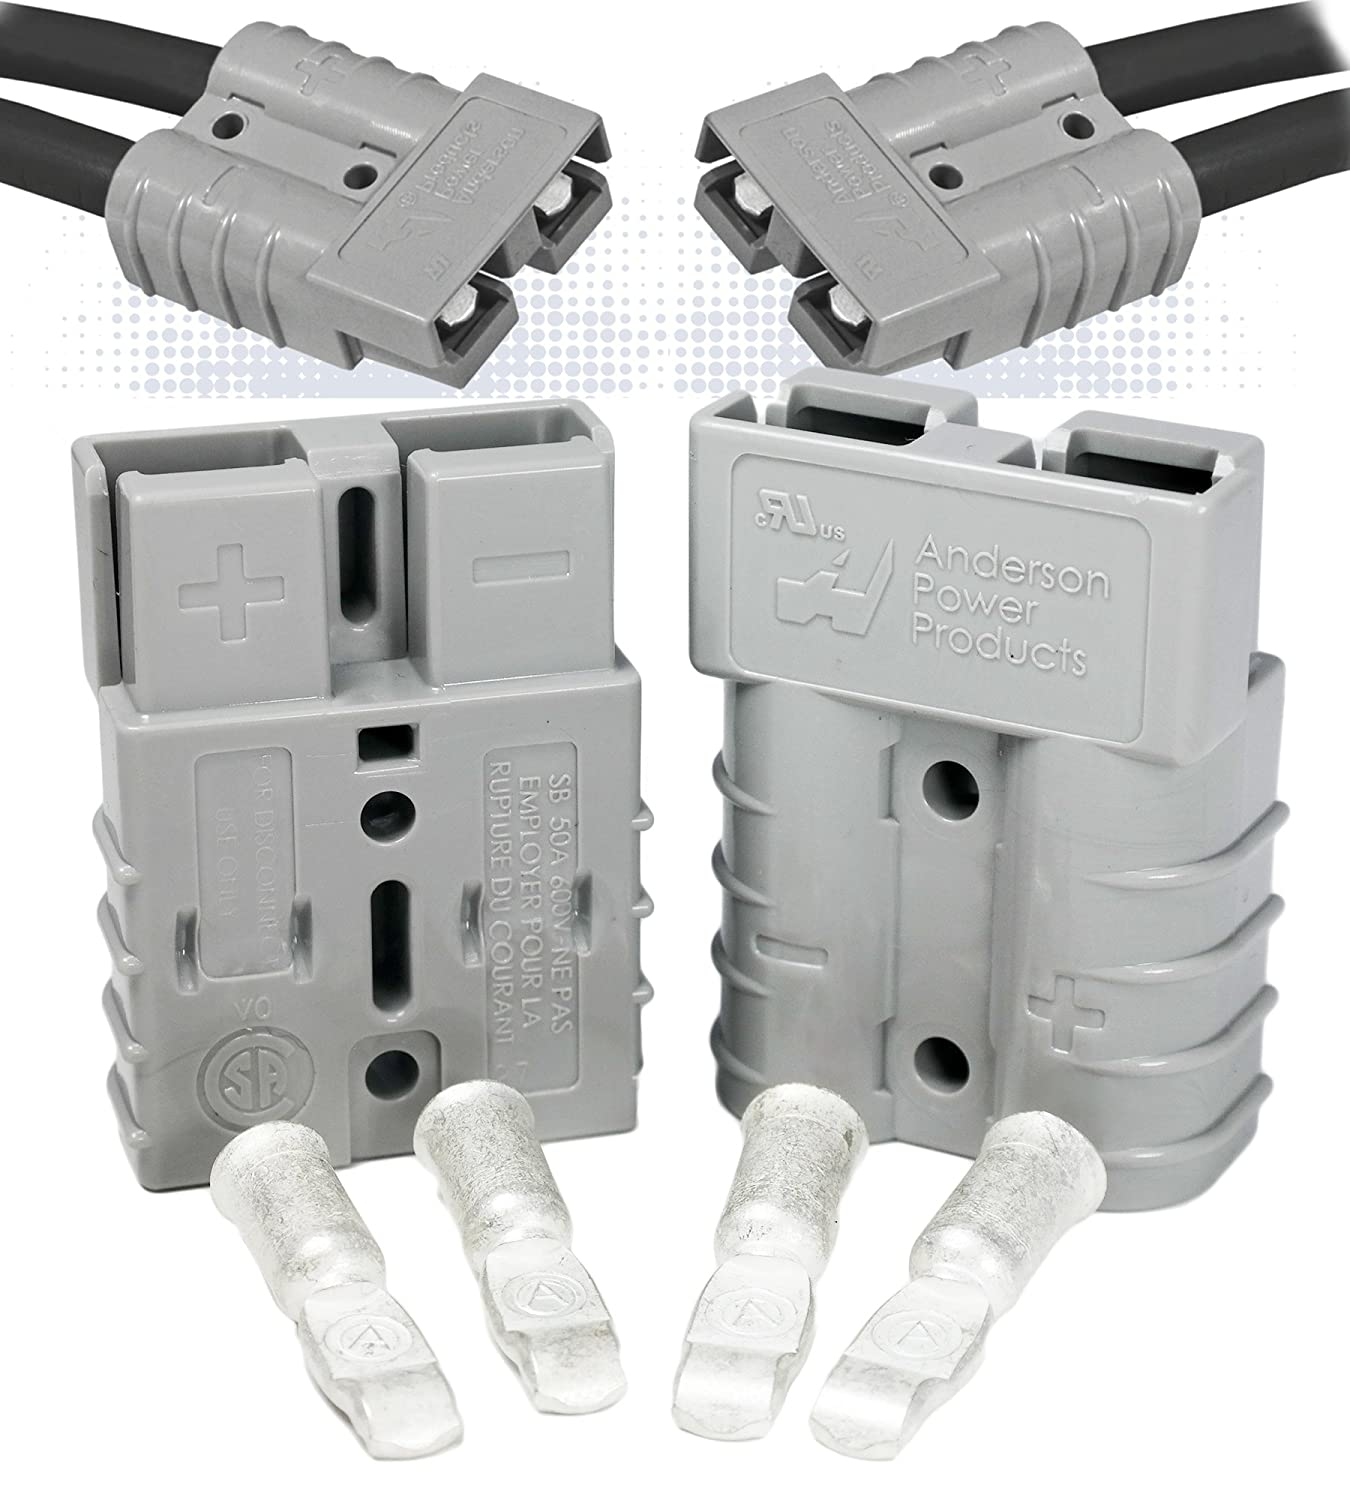 Anderson SB50 Connector Kit Award 50 Amps w Gray Housing 36V AWG Baltimore Mall 8